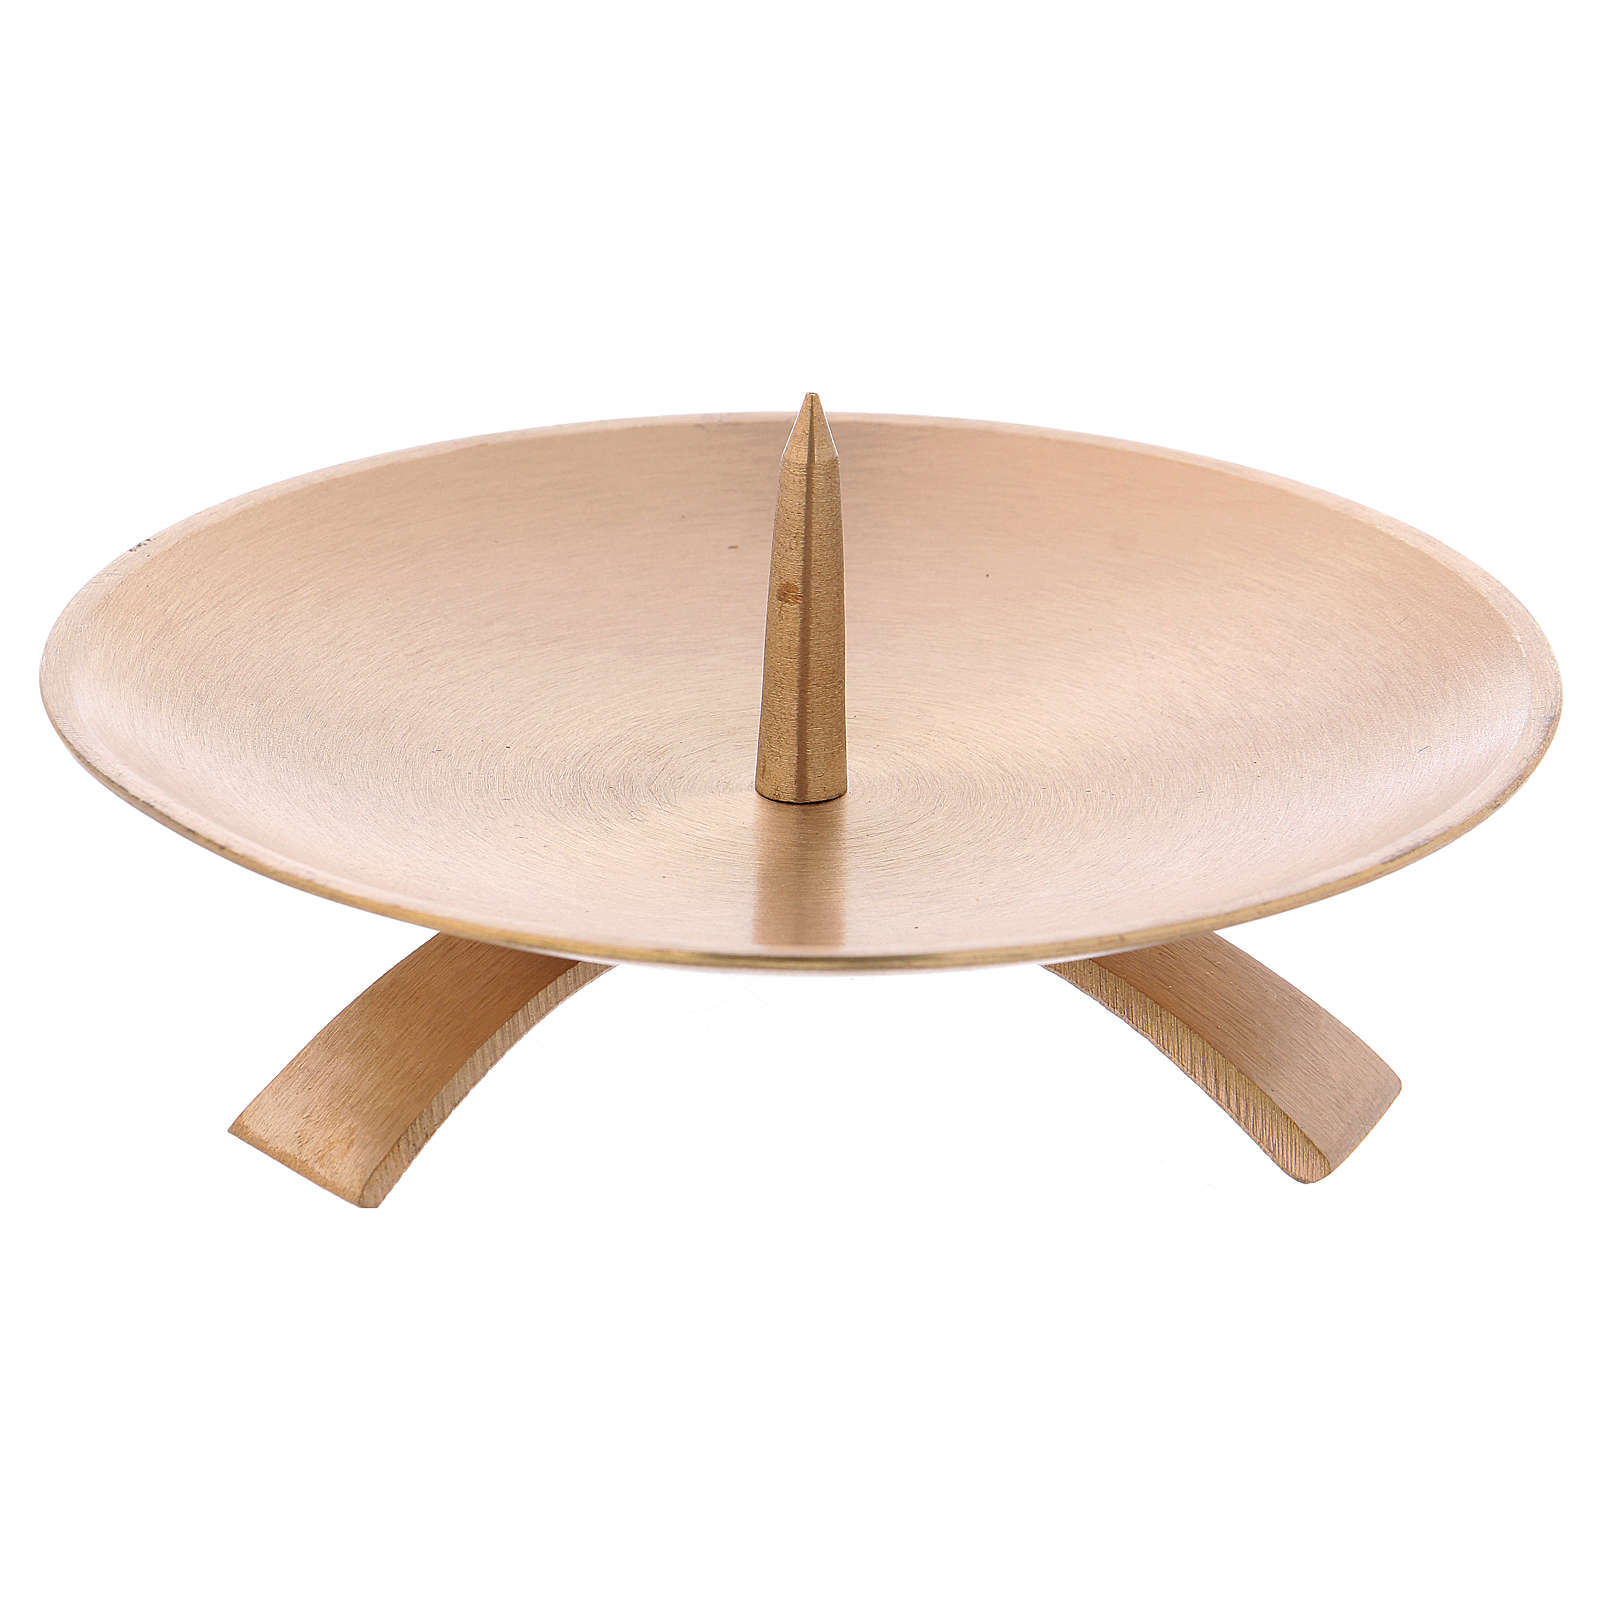 Candle holder in satinised gold-plated brass with tripod 13 cm 4